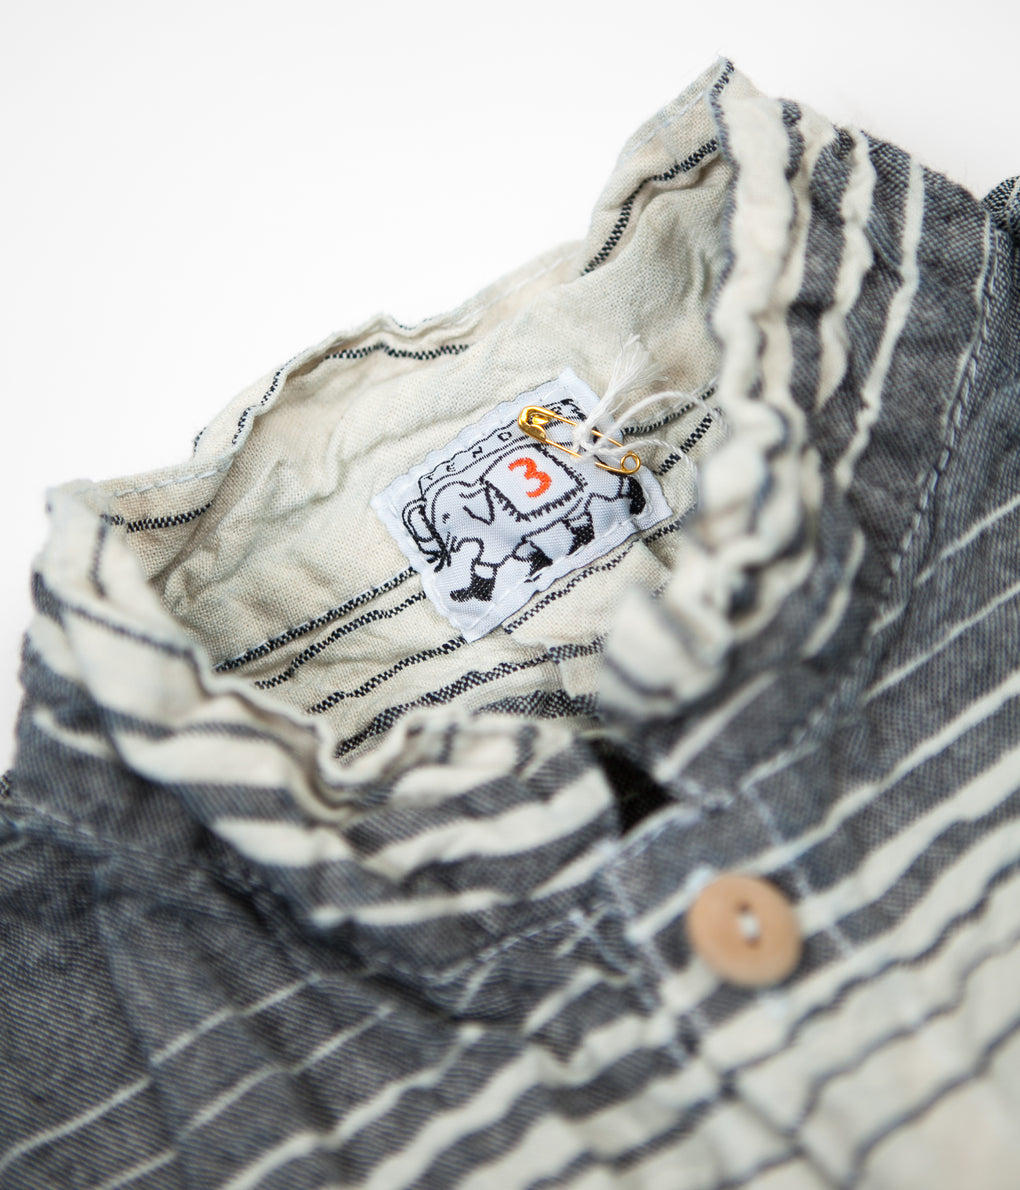 Tender Type 427 Periscope Pocket Tail Shirt - Indigo Doppler Stripe Calico Rinse Wash